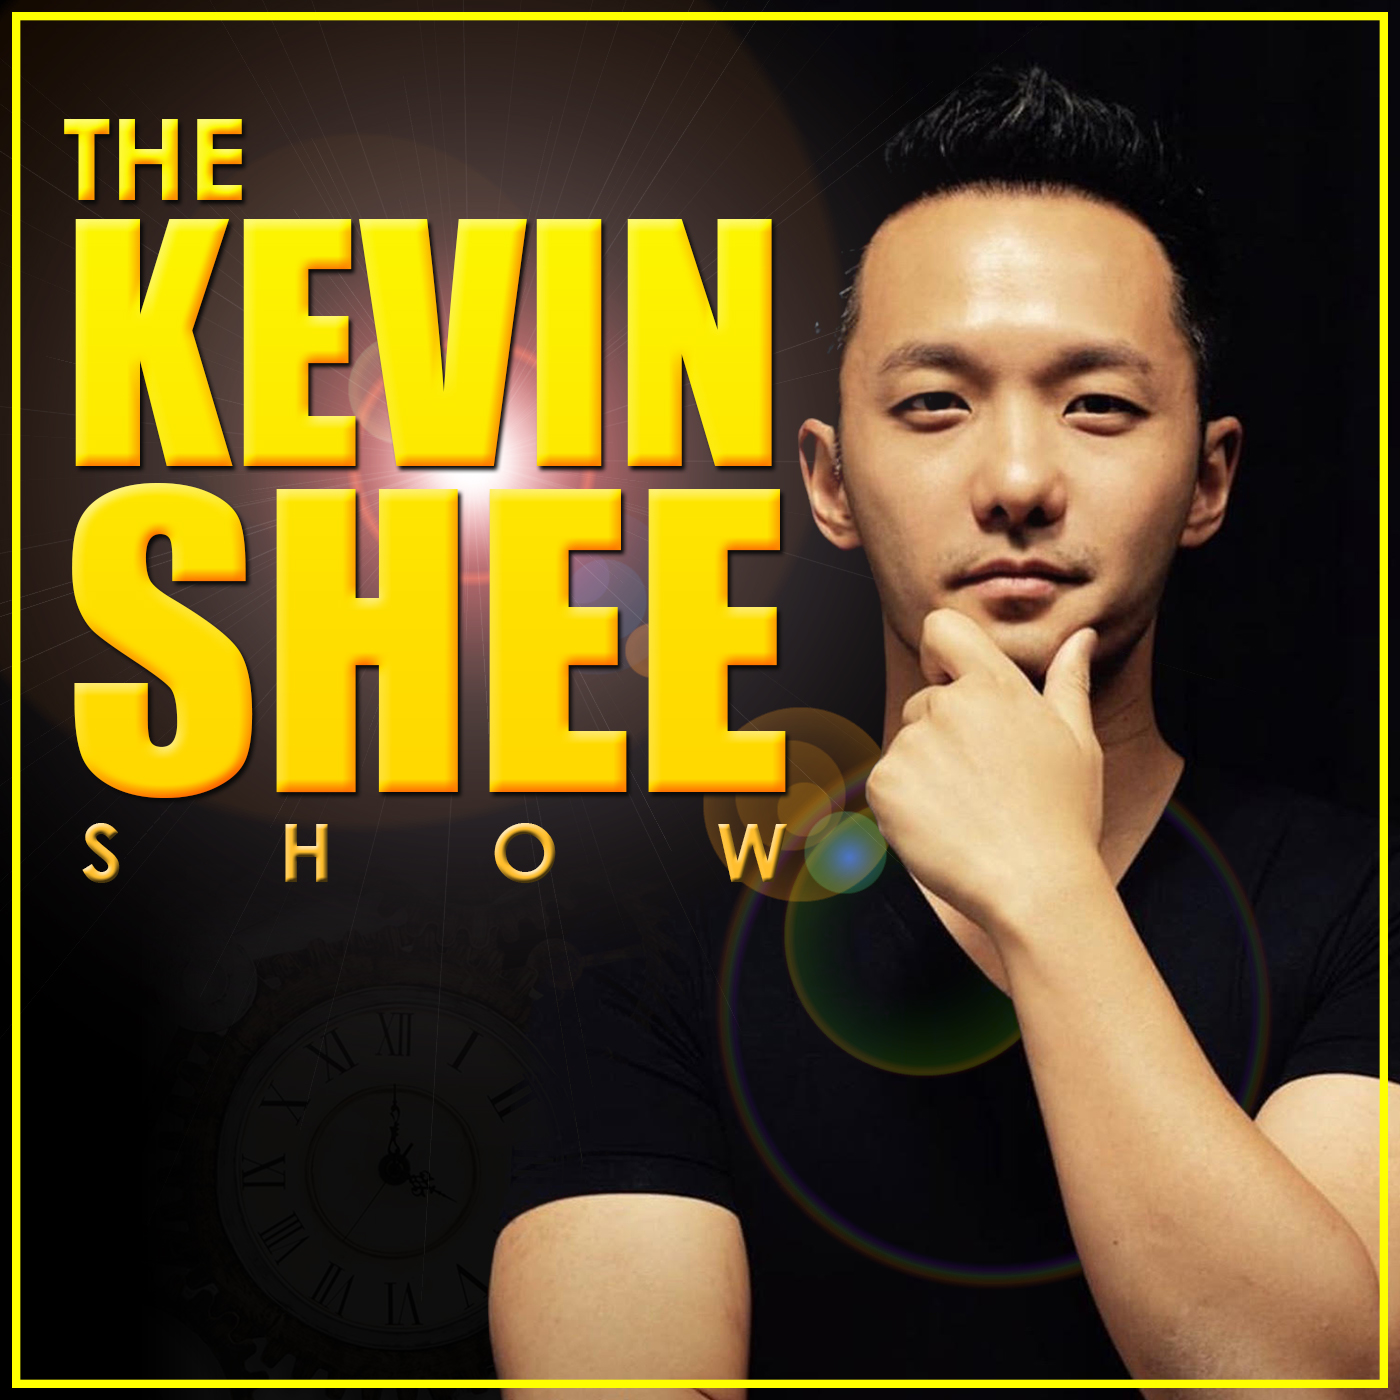 The Kevin Shee Show